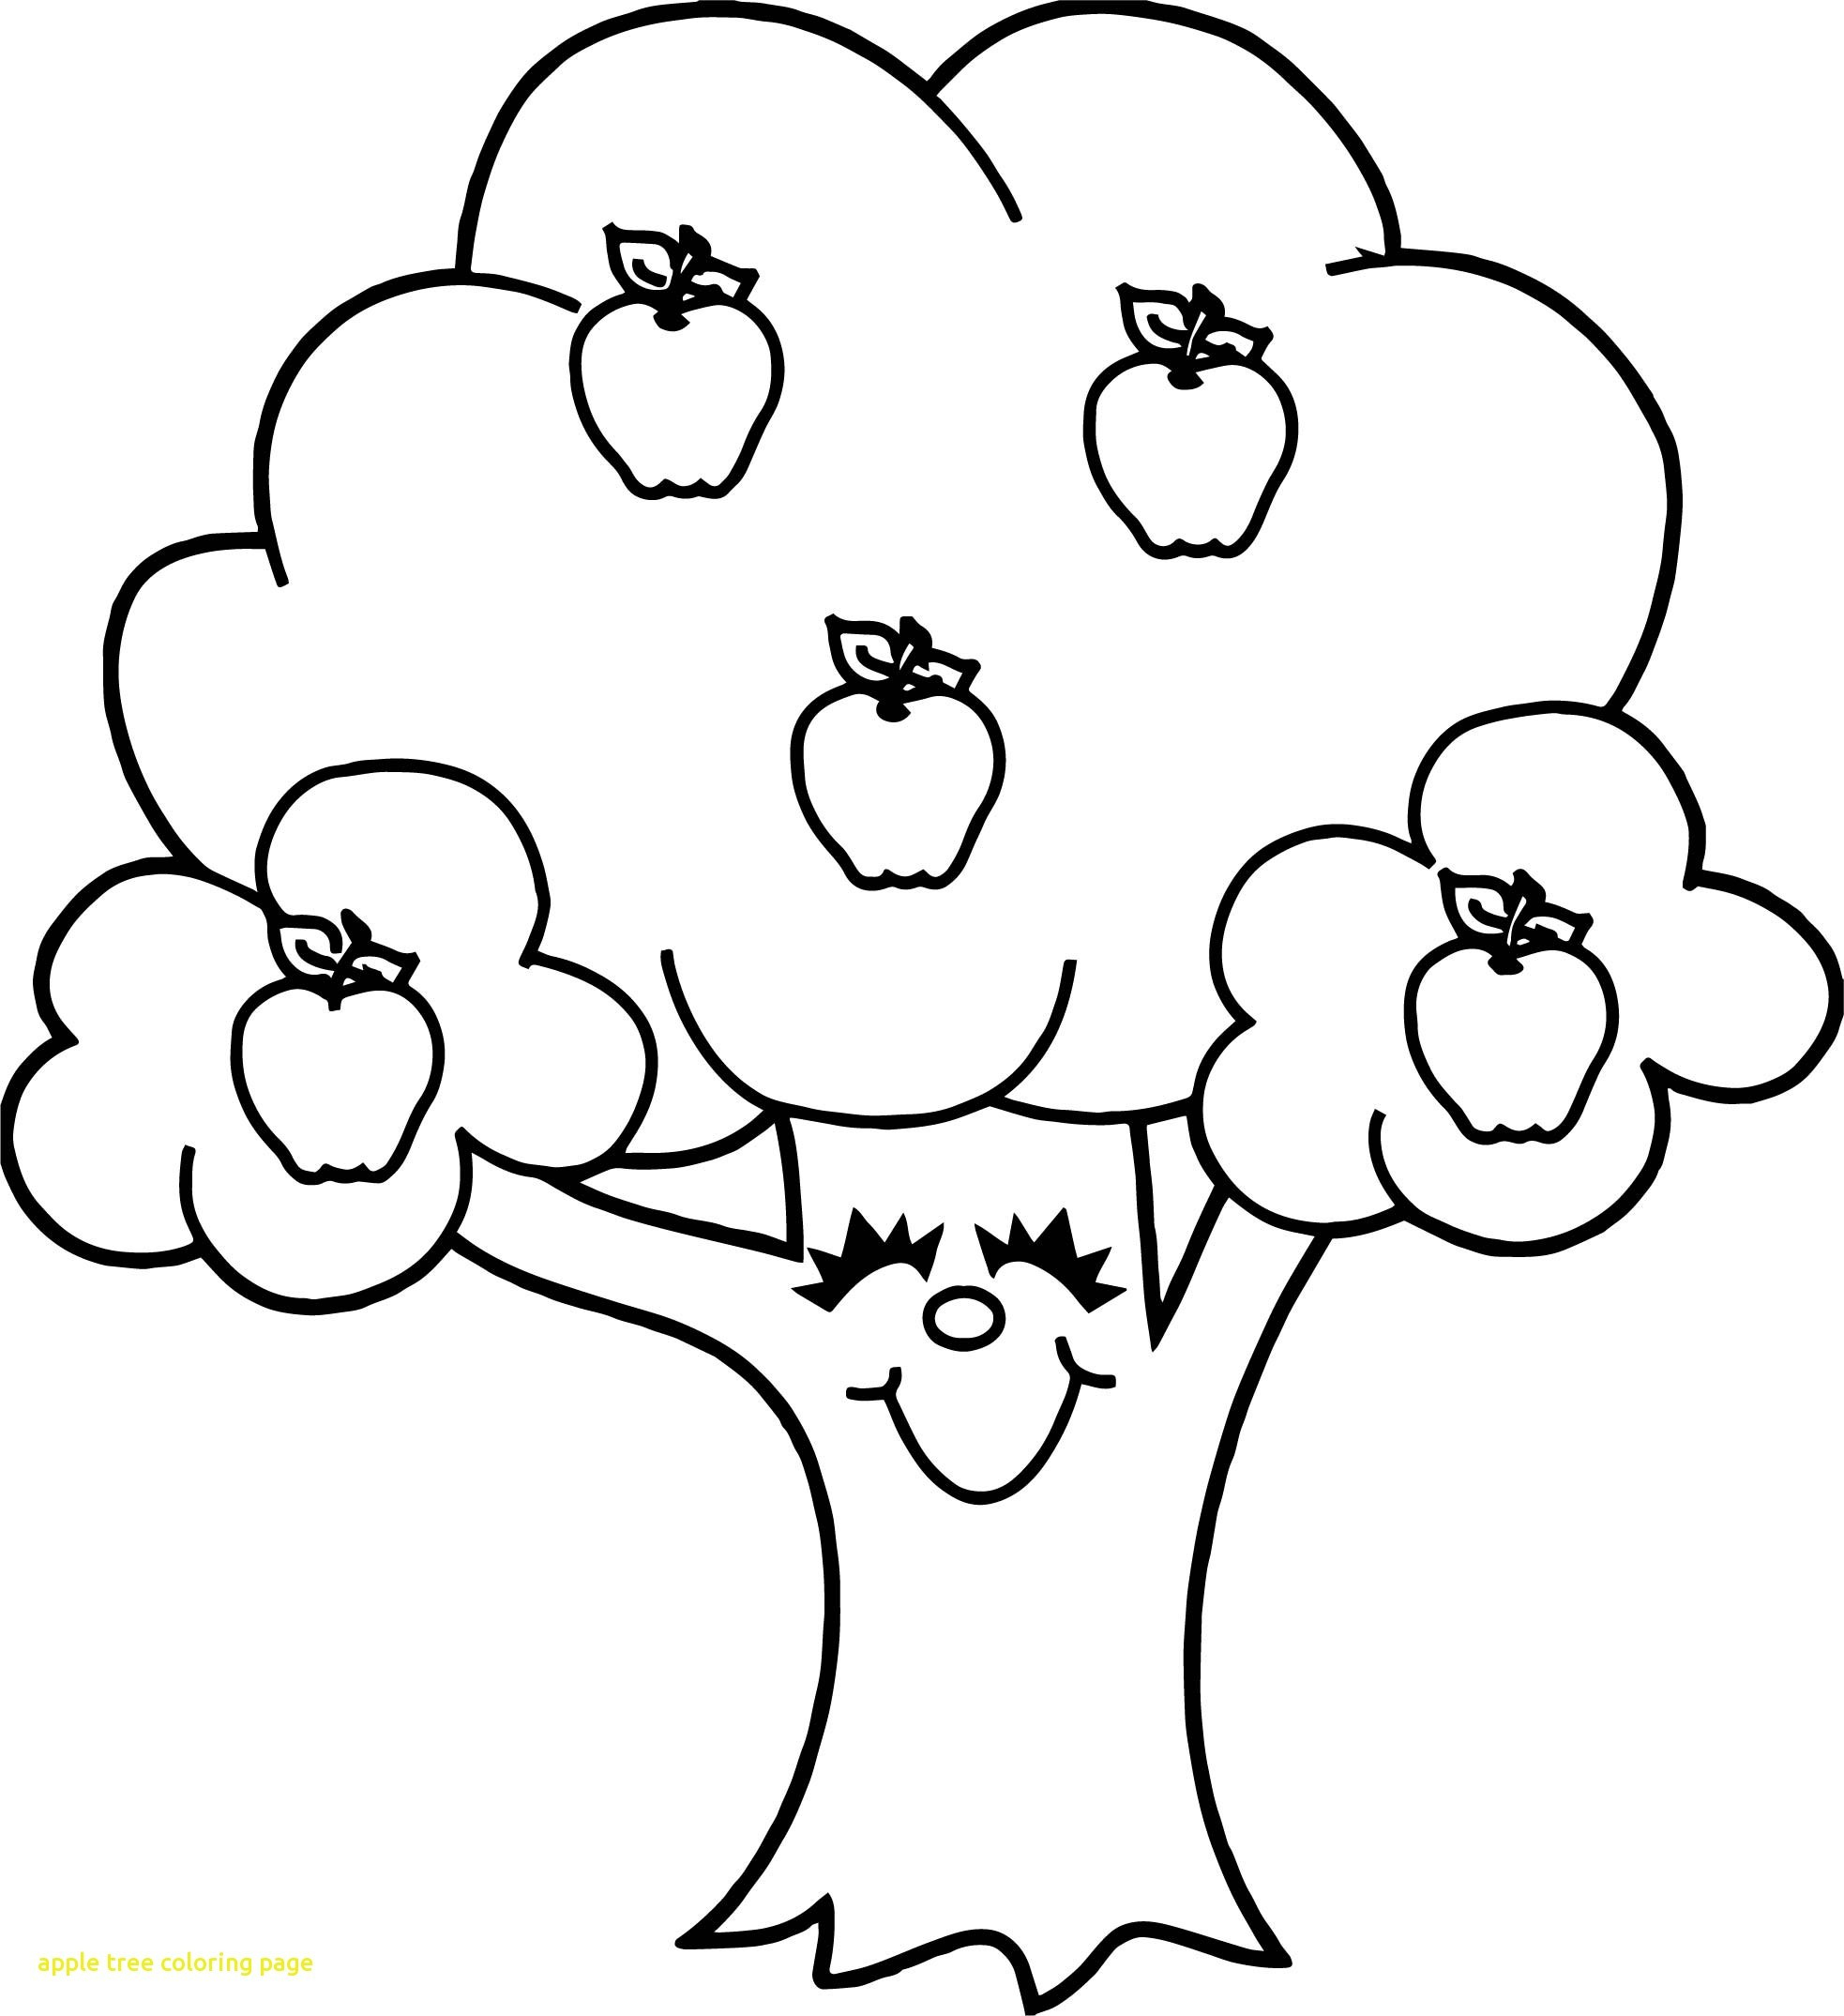 Coloring Pages Apple Tree Best Apple Tree Coloring Pages Free Gallery Of Noted Coloring Picture A Tree Pages Unknown Resolutions Printable